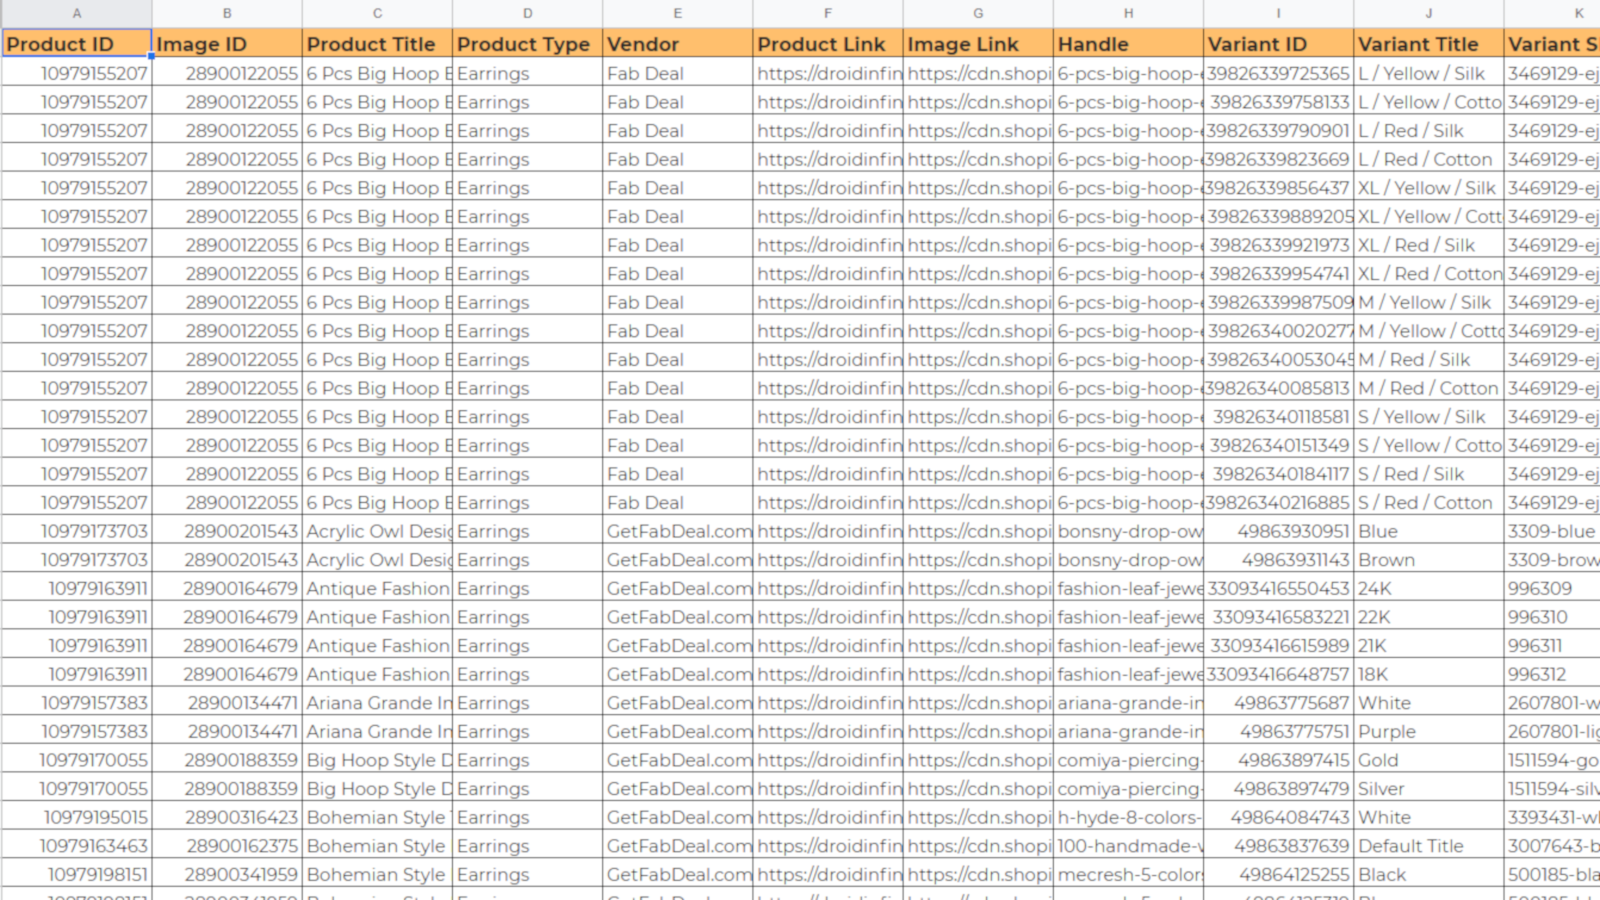 Exported Excel Sheet of Store Products with IDs